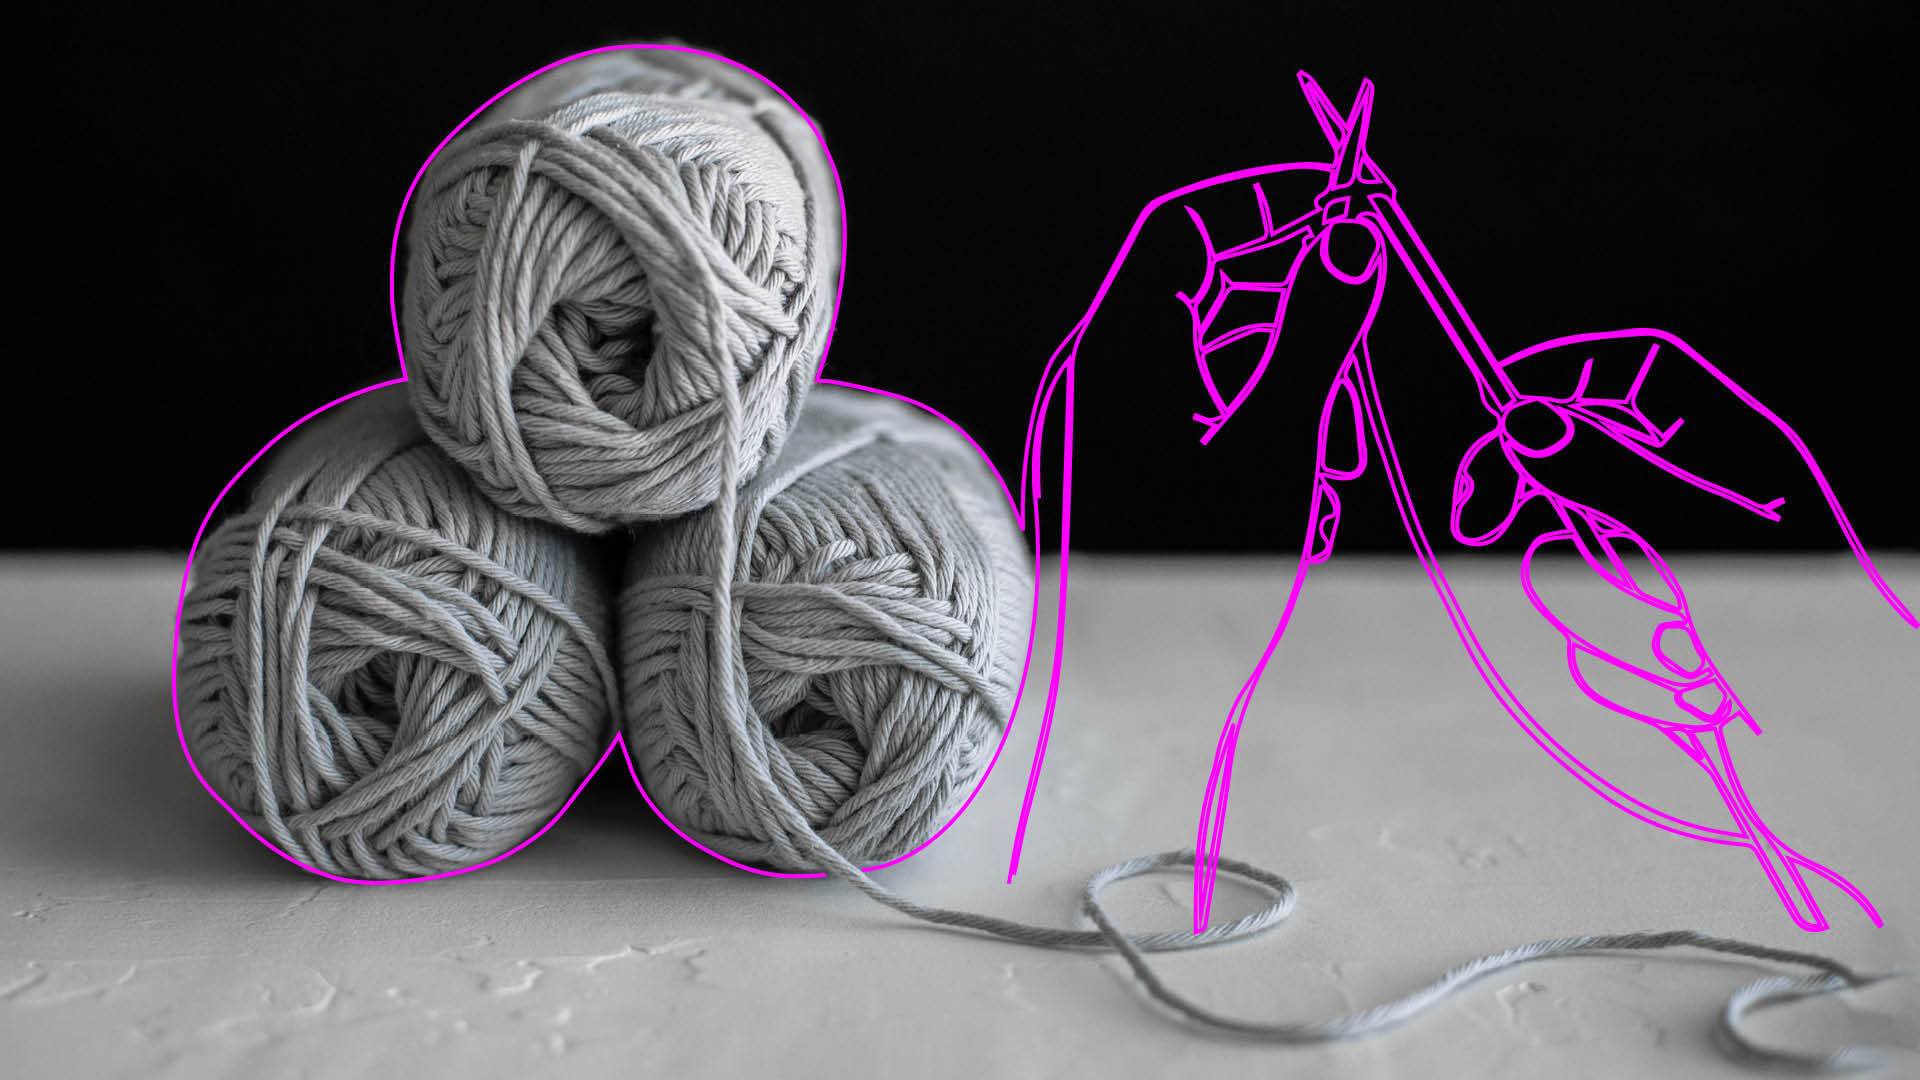 MATTERS OF OBSESSION: The itch to stitch: The wool that binds us